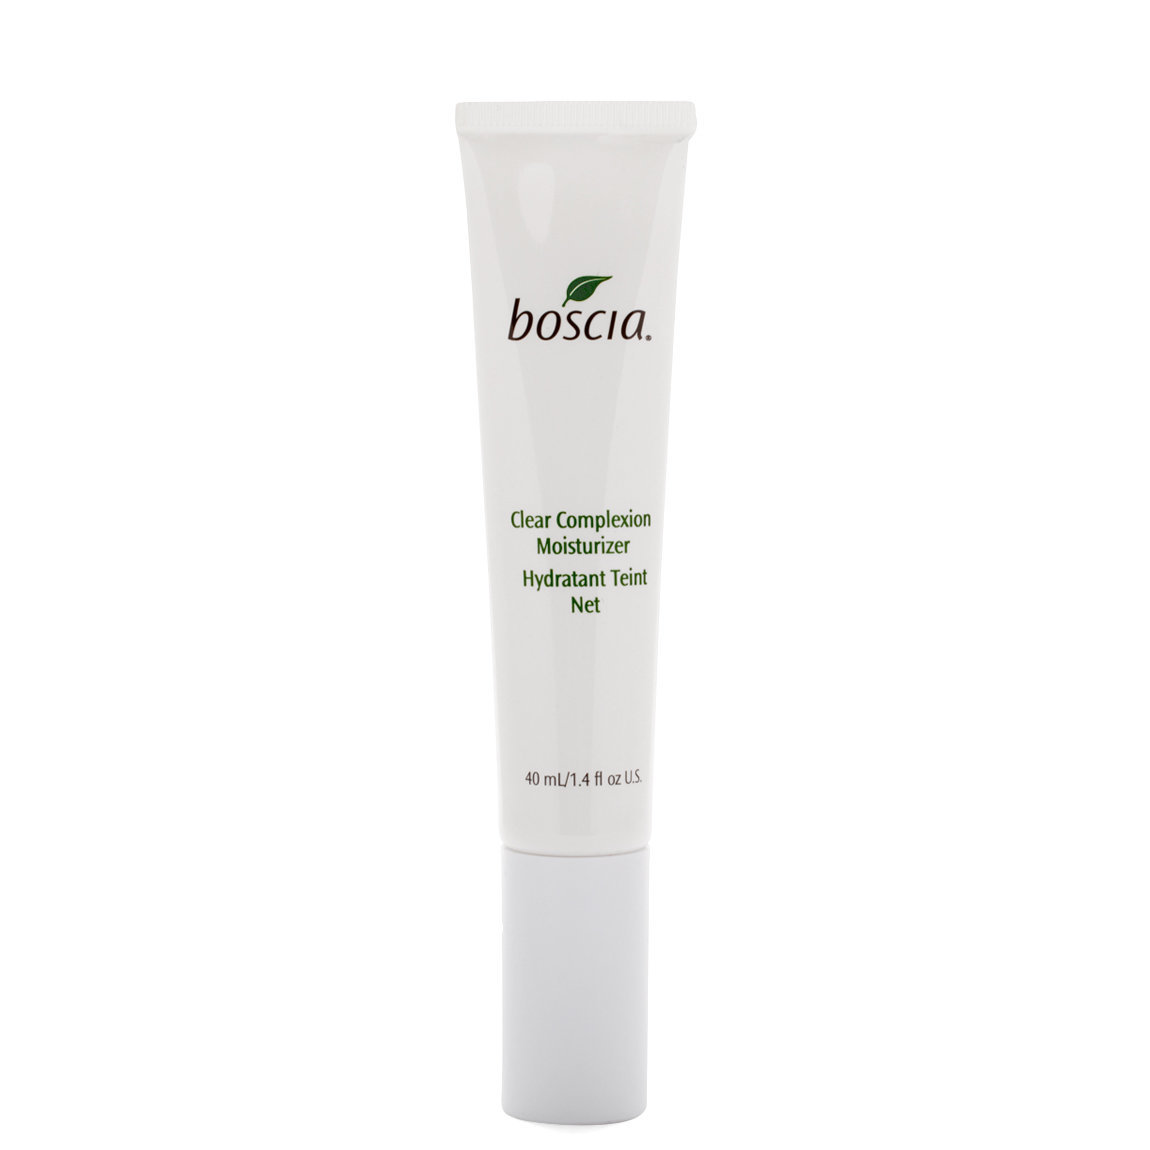 boscia Clear Complexion Moisturizer product swatch.